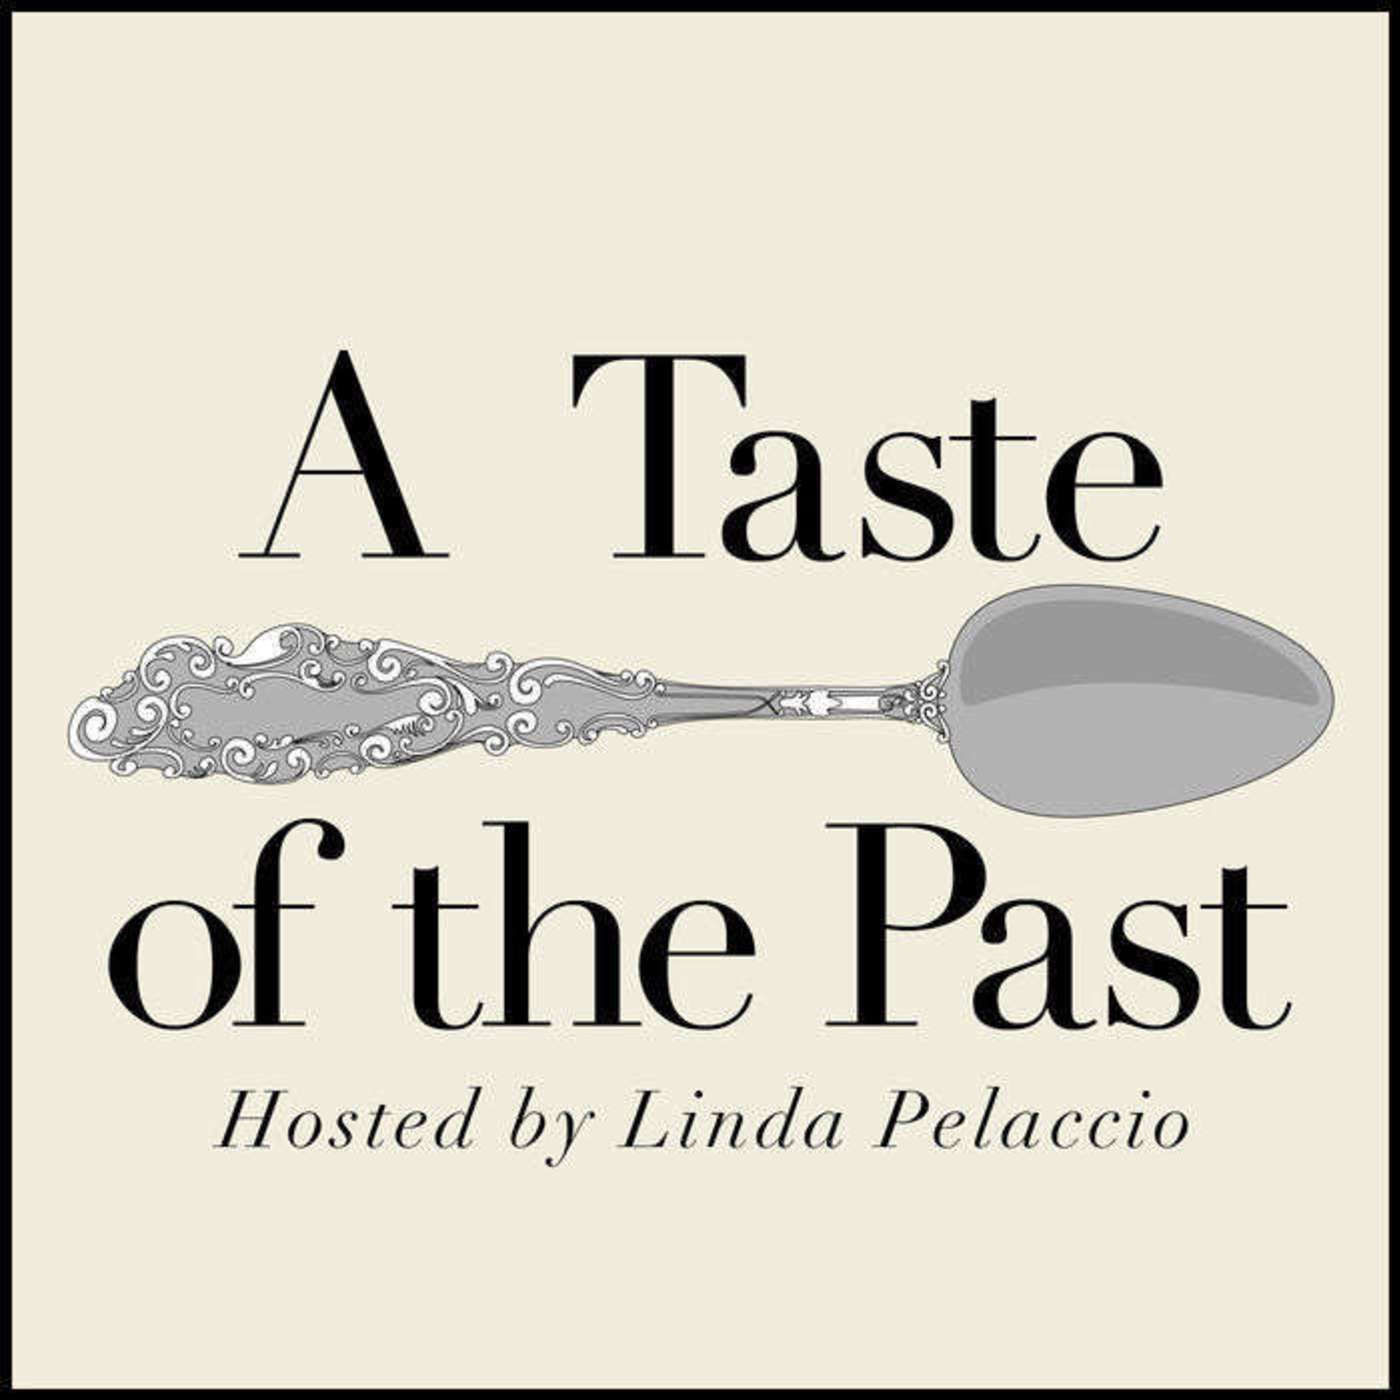 Episode 167: Foods of The Silk Road